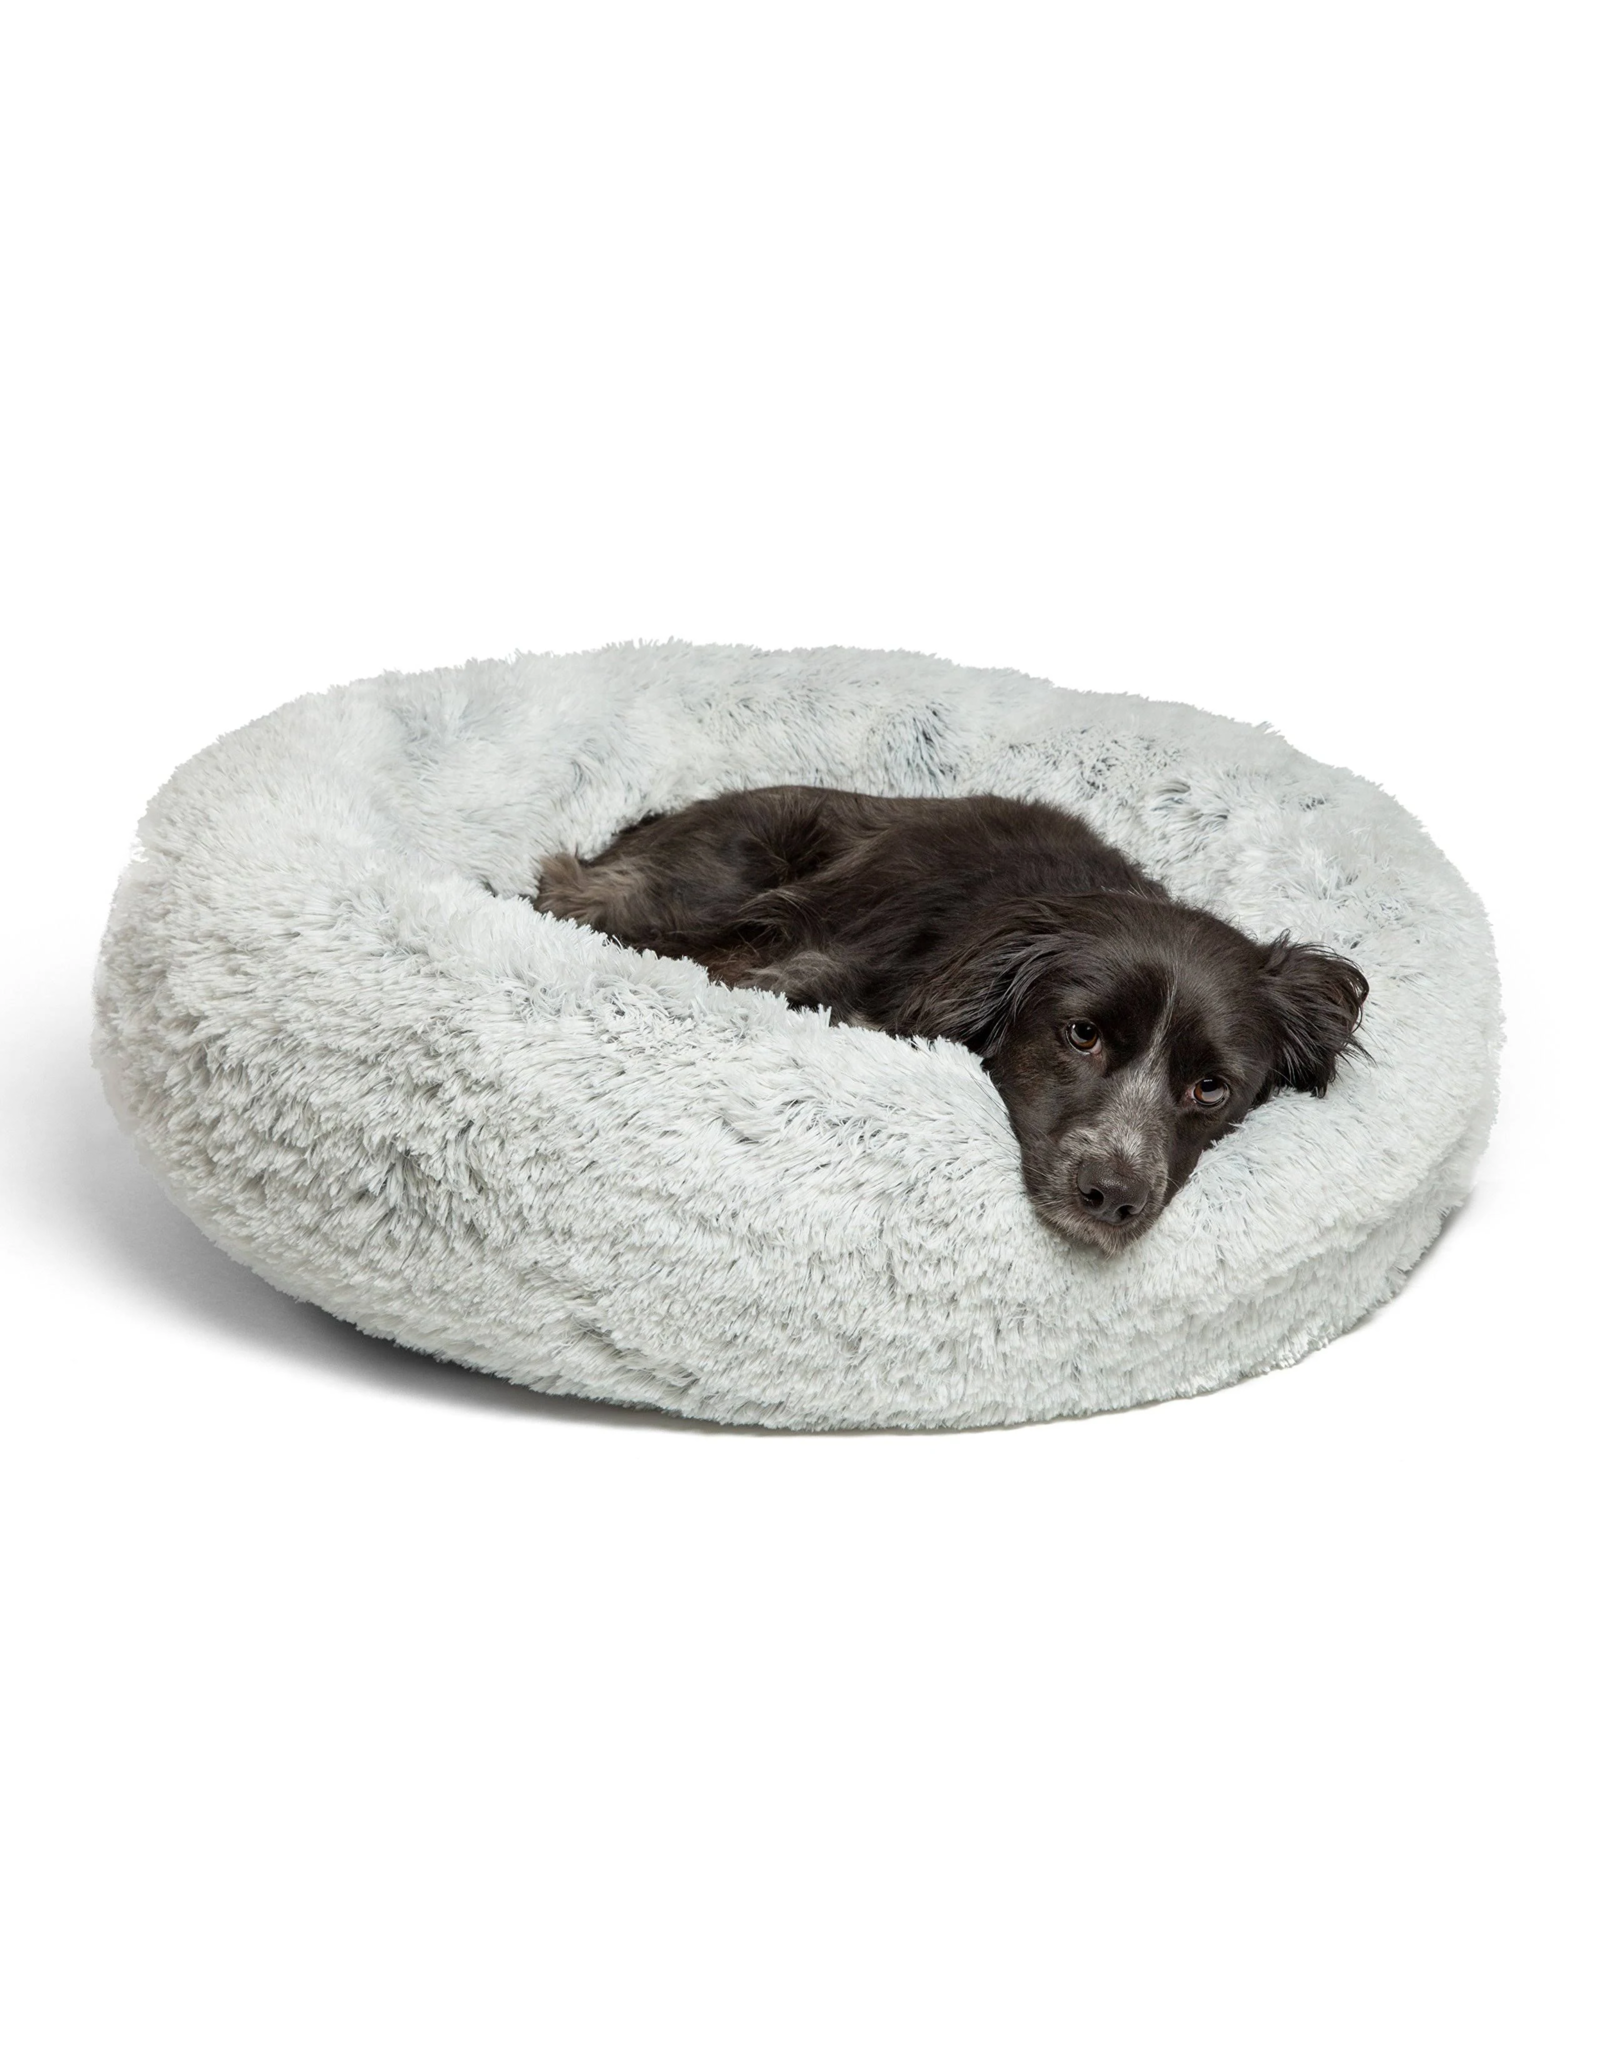 Best Friends by Sheri THE ORIGINAL CALMING SHAG DONUT CUDDLER PET BED